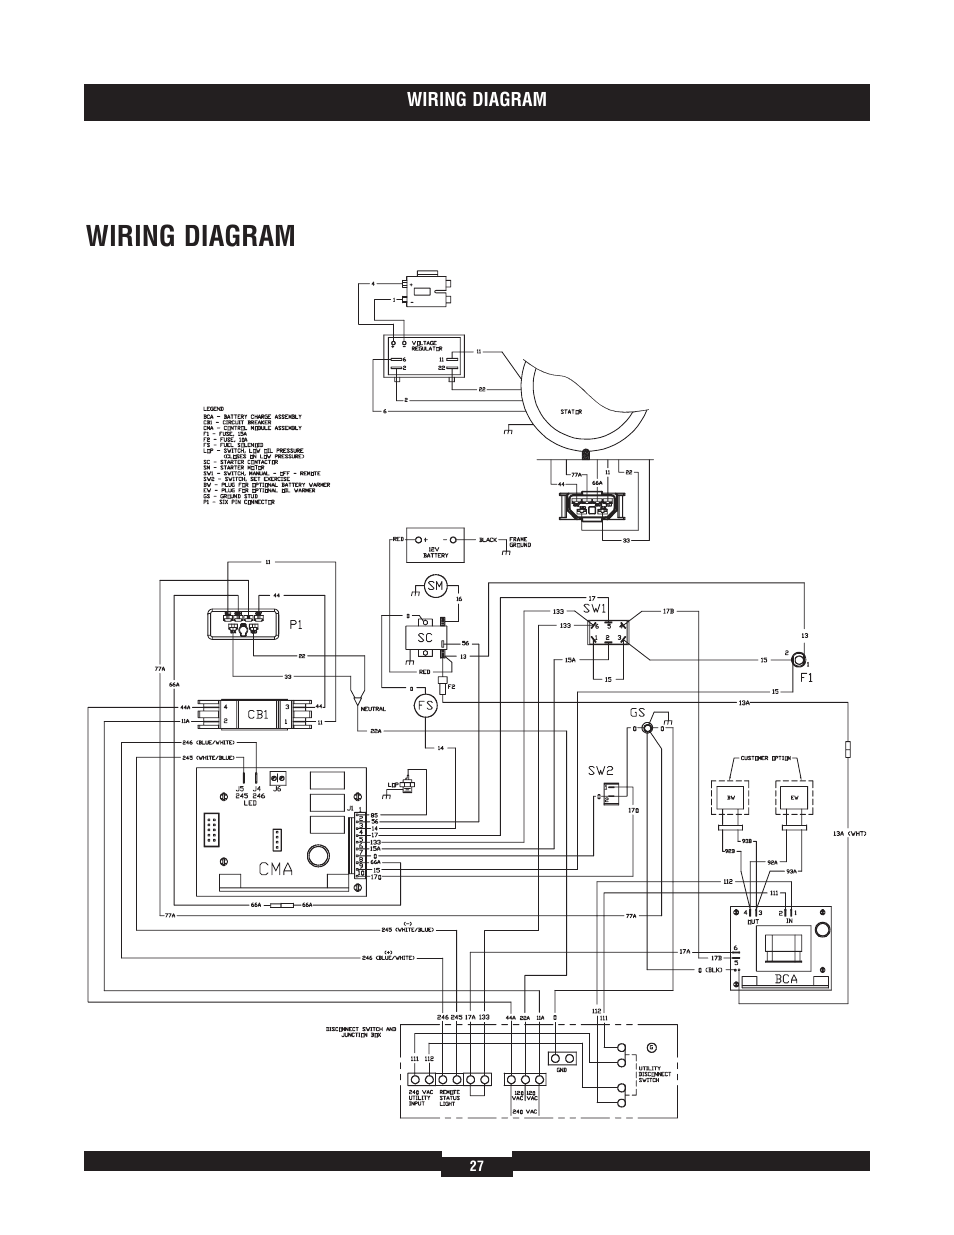 [DIAGRAM] Cuisinart Griddler User Wiring Diagram FULL